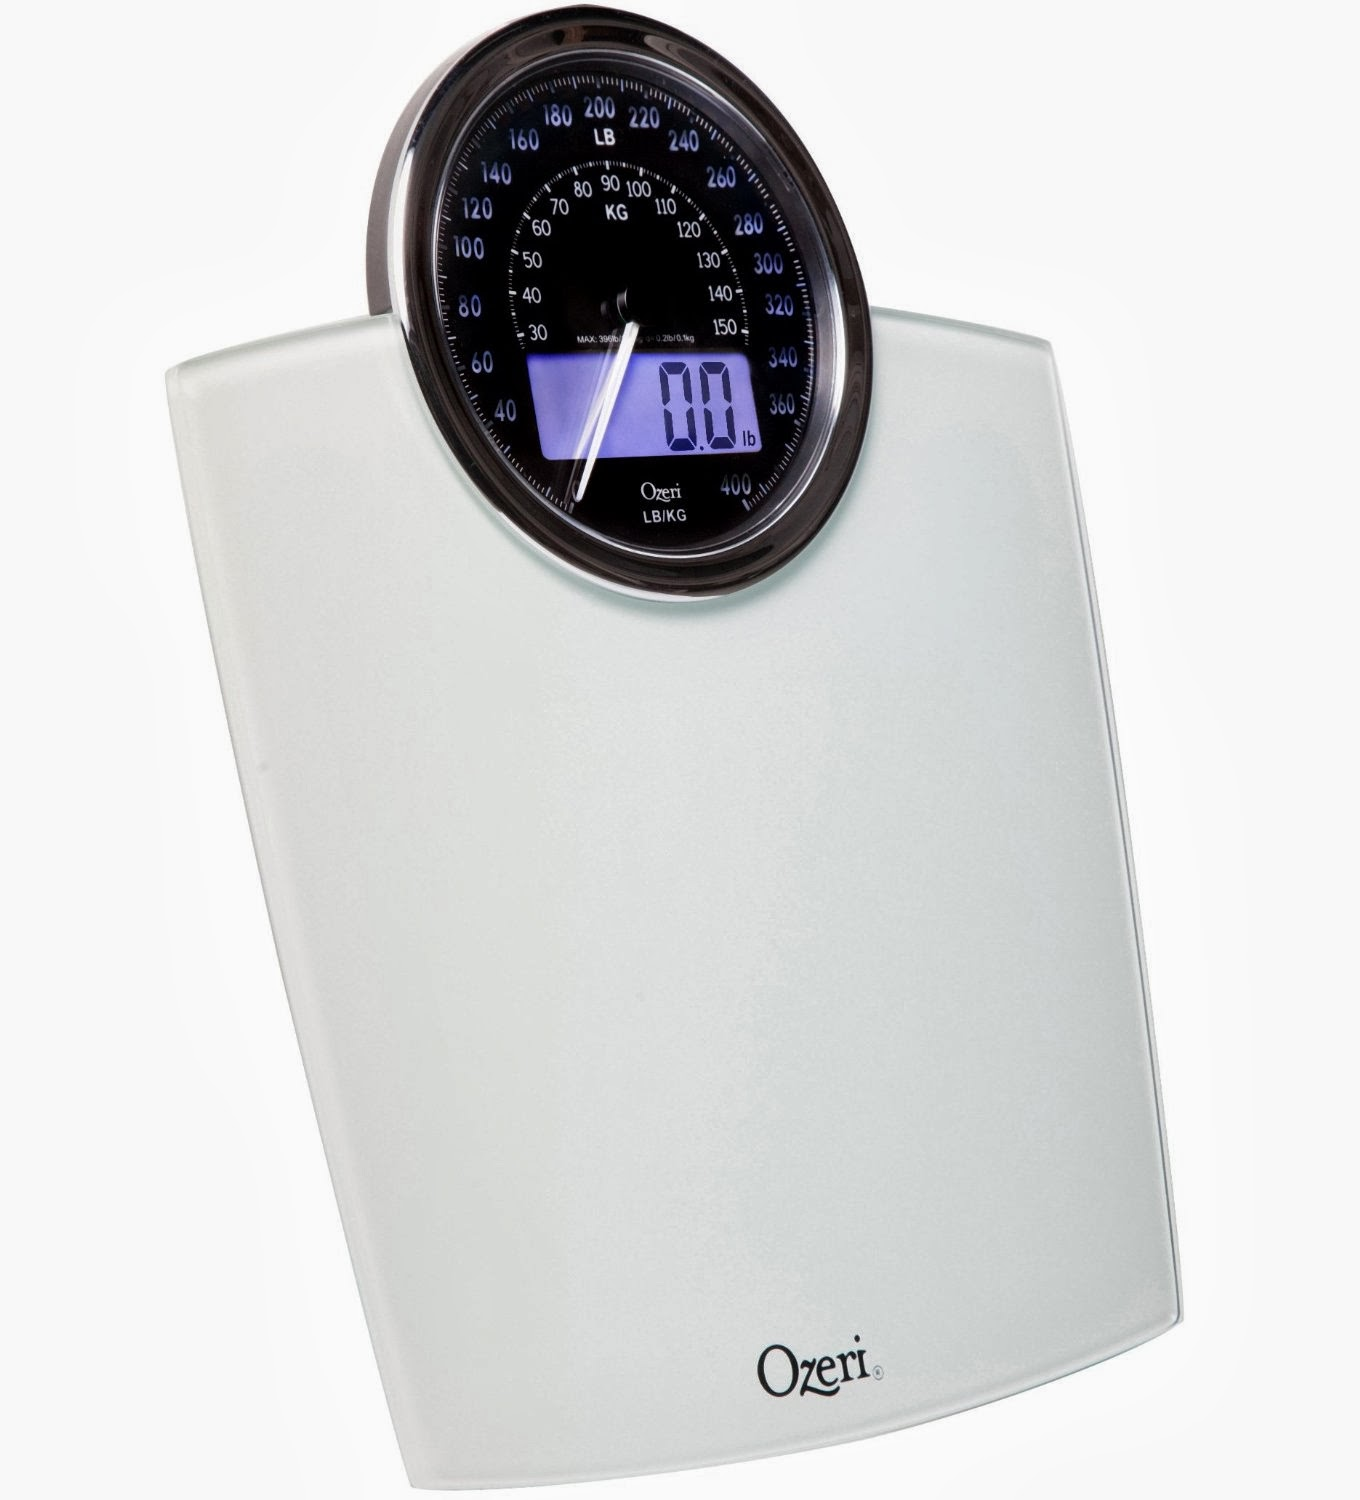 Ozeri Rev Digital Bathroom Scale